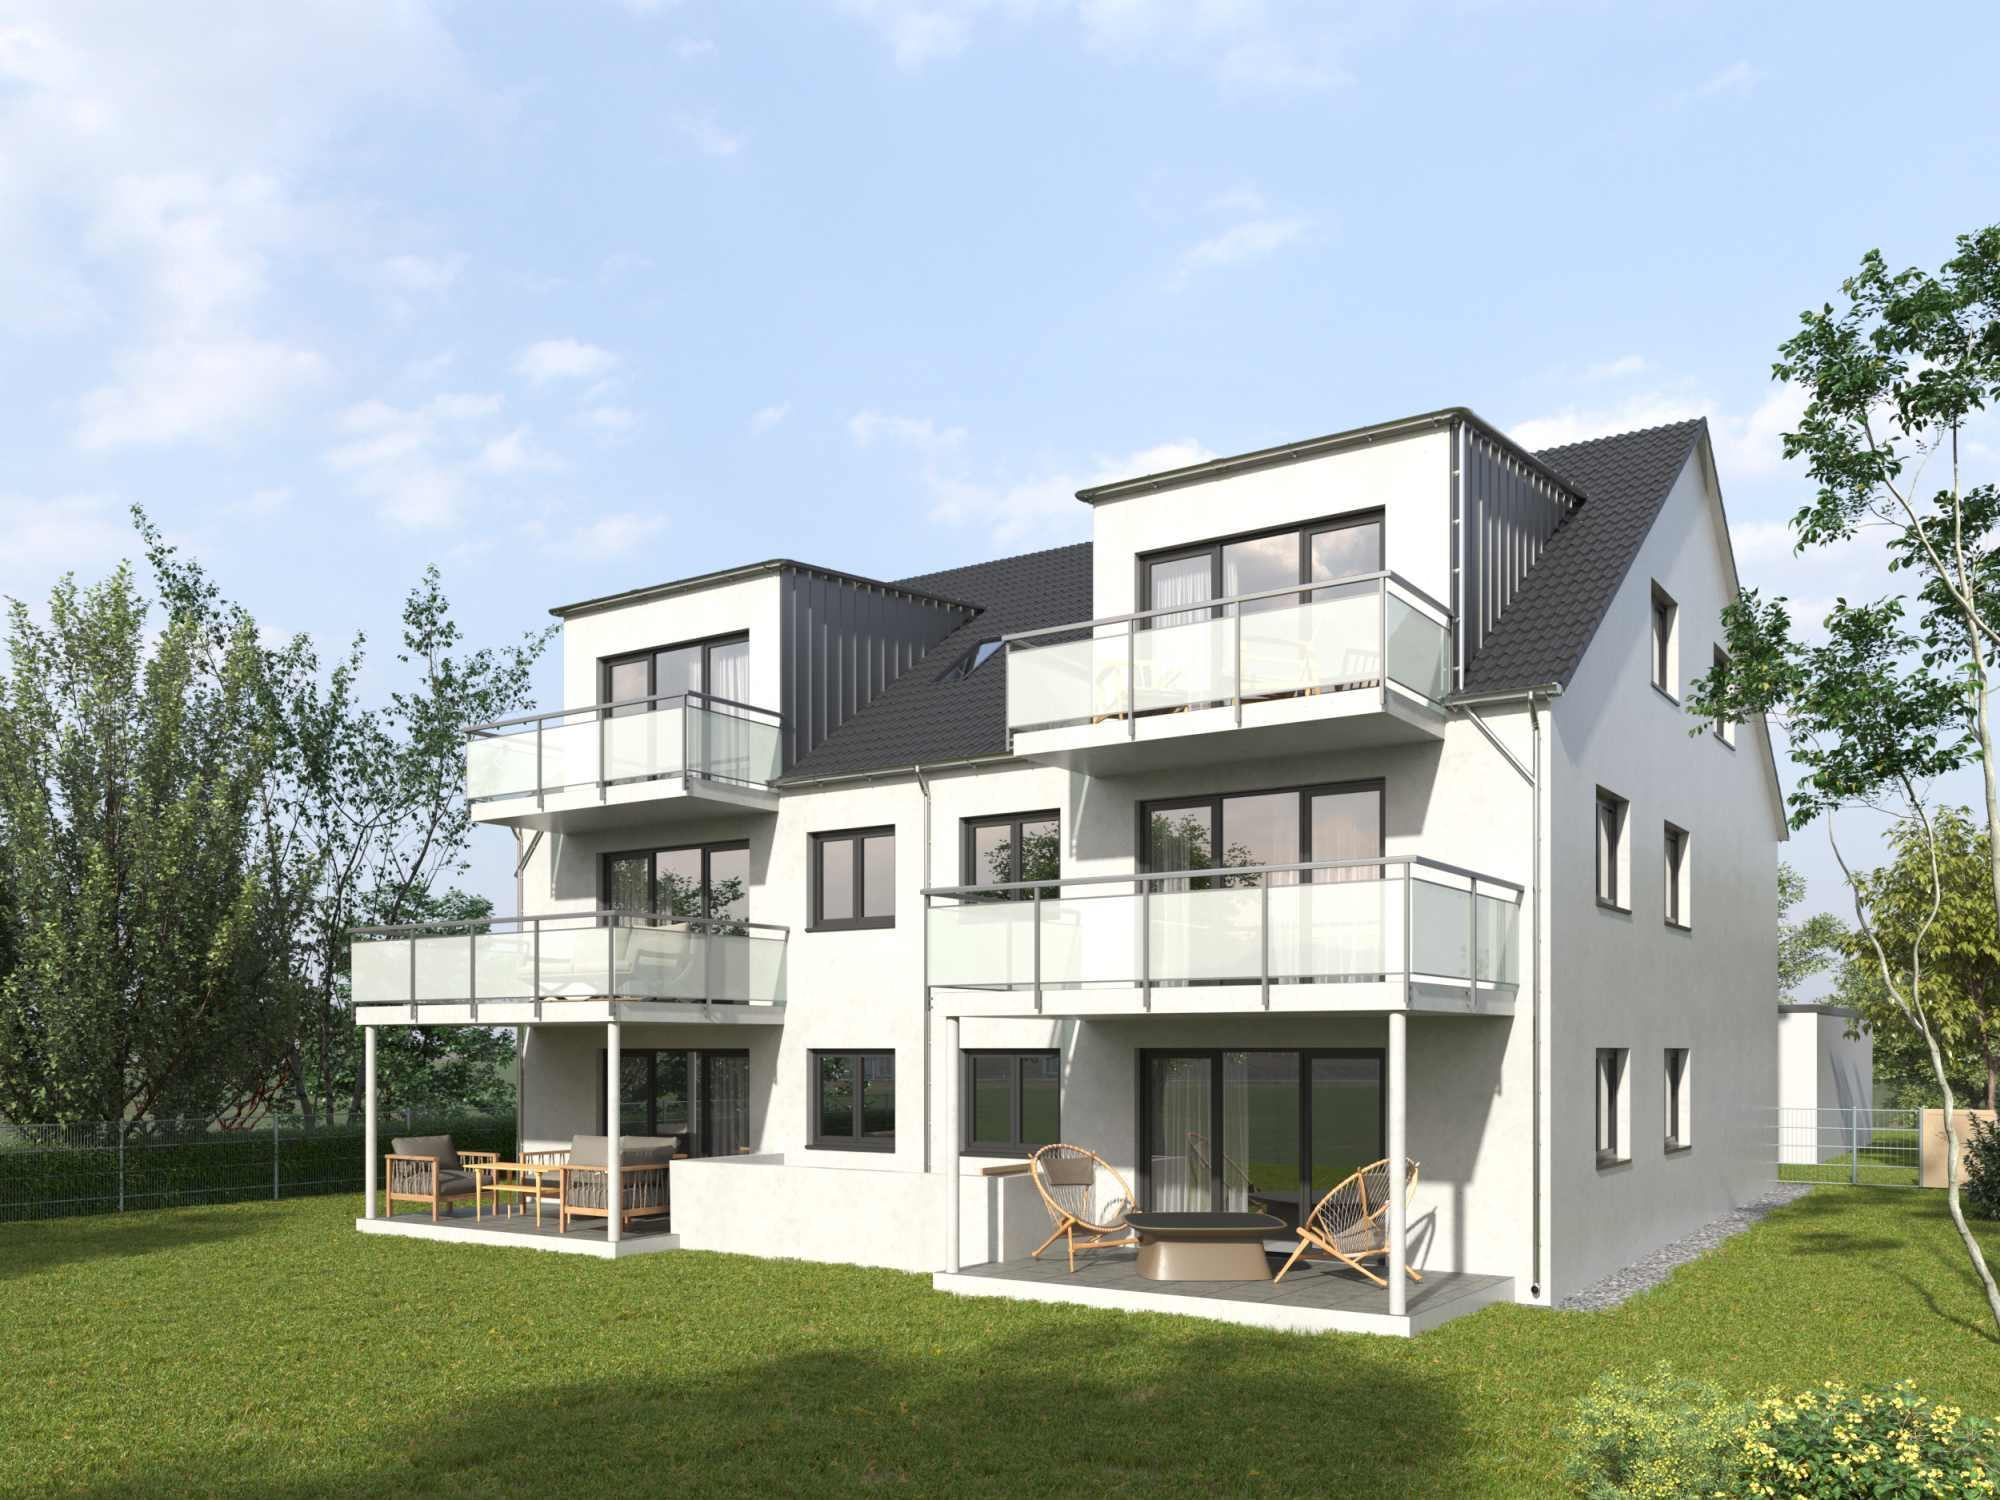 Architekturvisualisierung in Ingolstadt